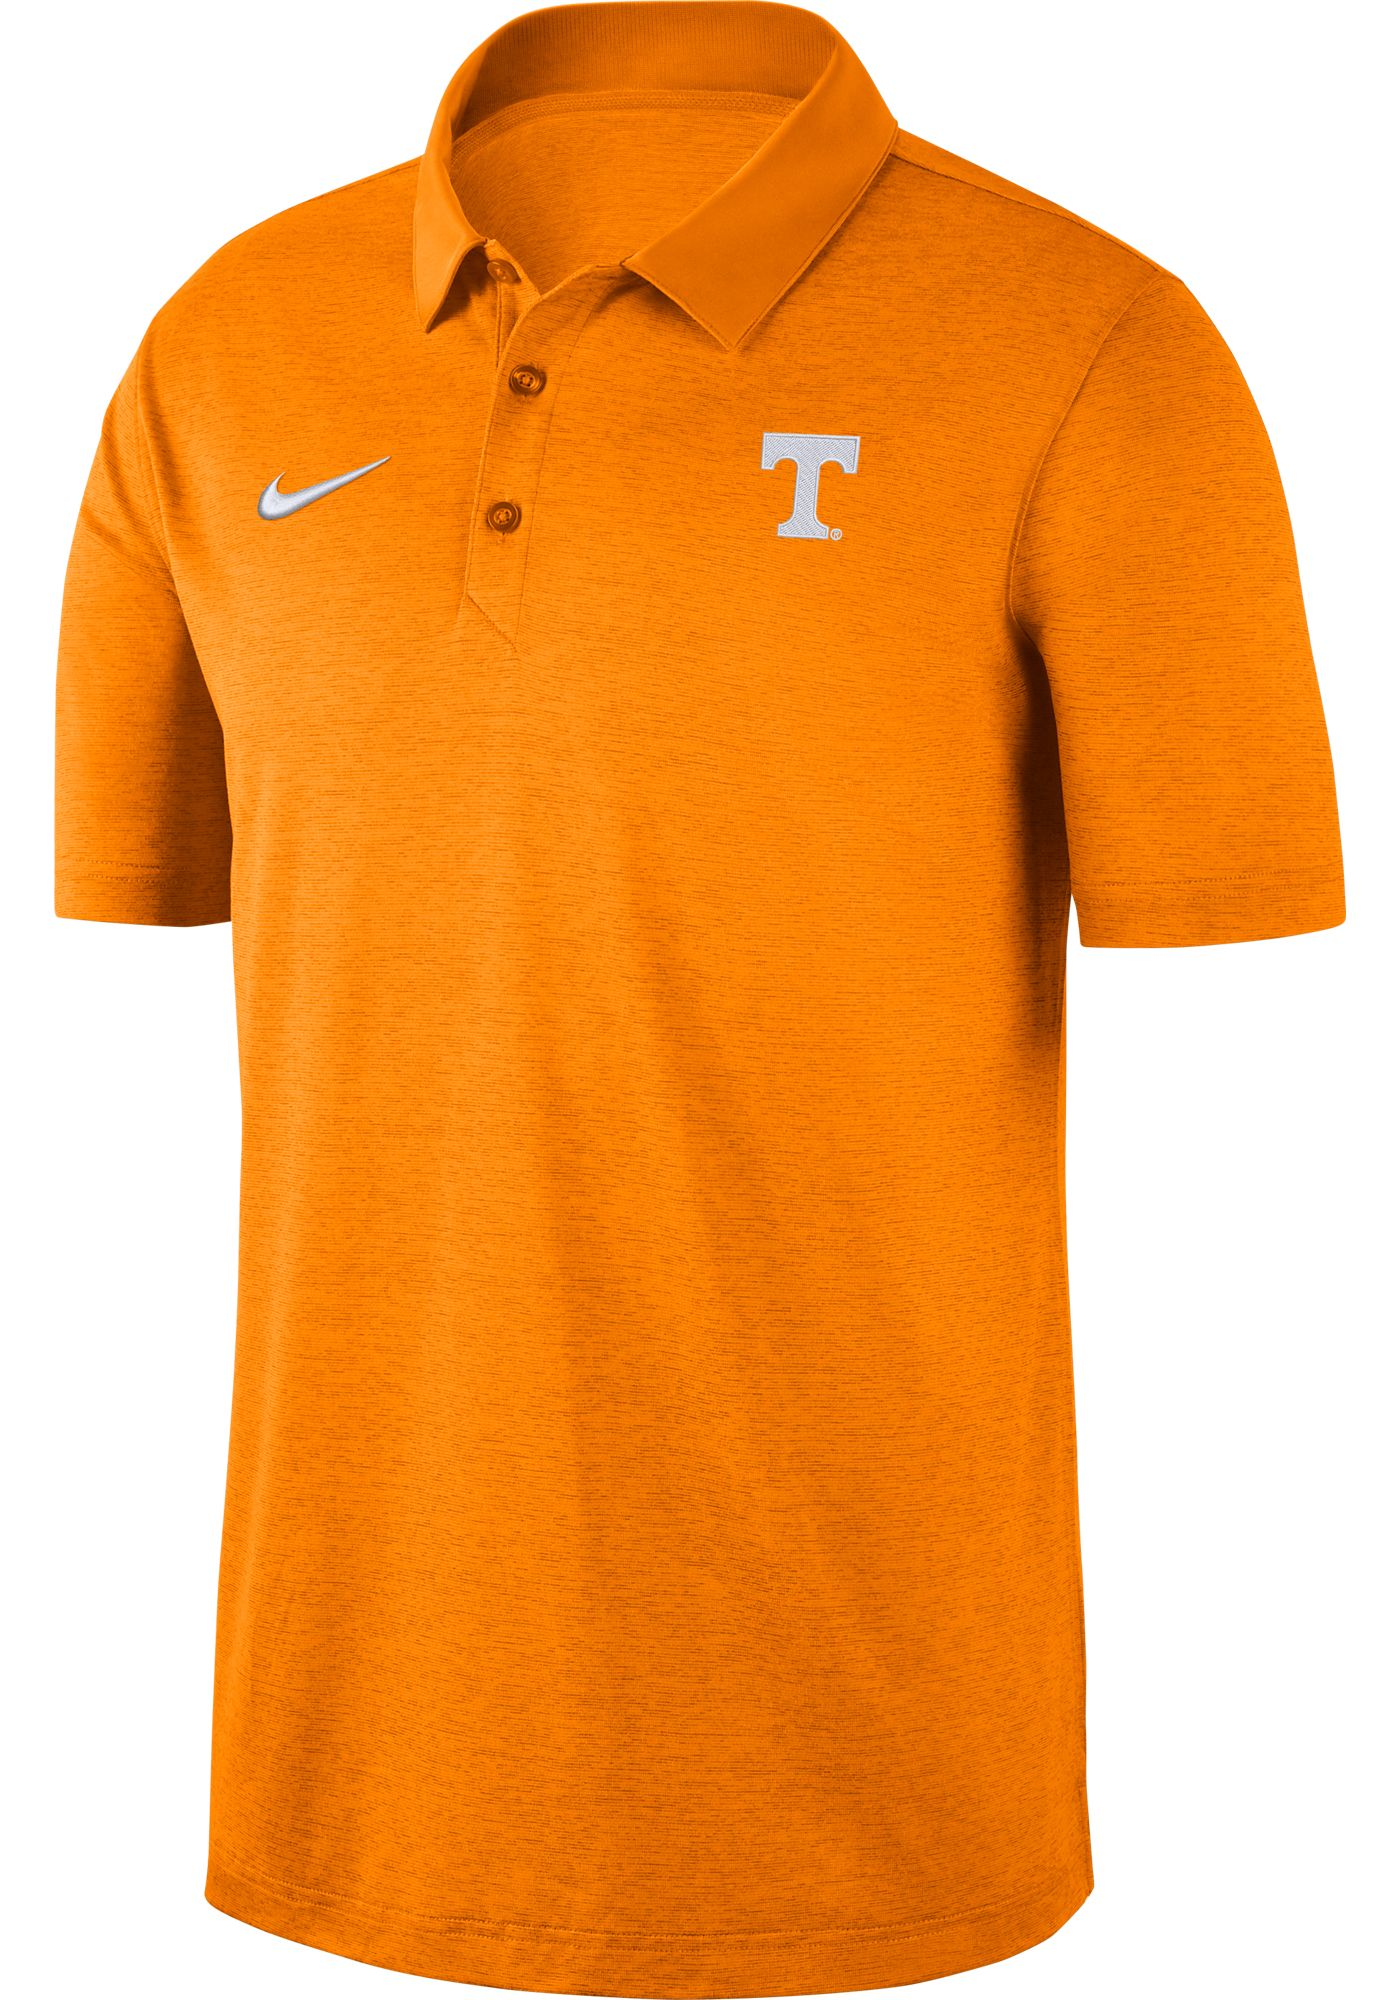 Nike Men's Tennessee Volunteers Tennessee Orange Dri-FIT Breathe Polo